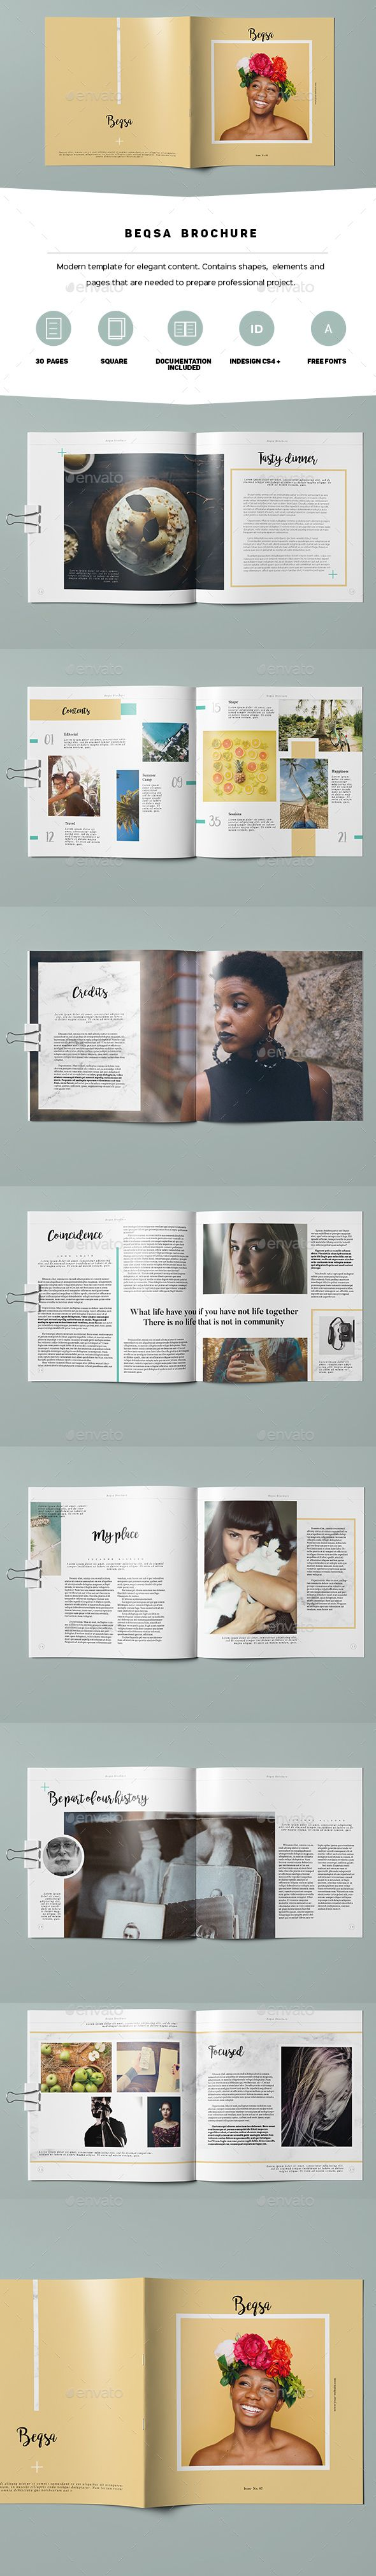 best 25 yearbook template ideas on pinterest booklet layout yearbook layouts and booklet design. Black Bedroom Furniture Sets. Home Design Ideas